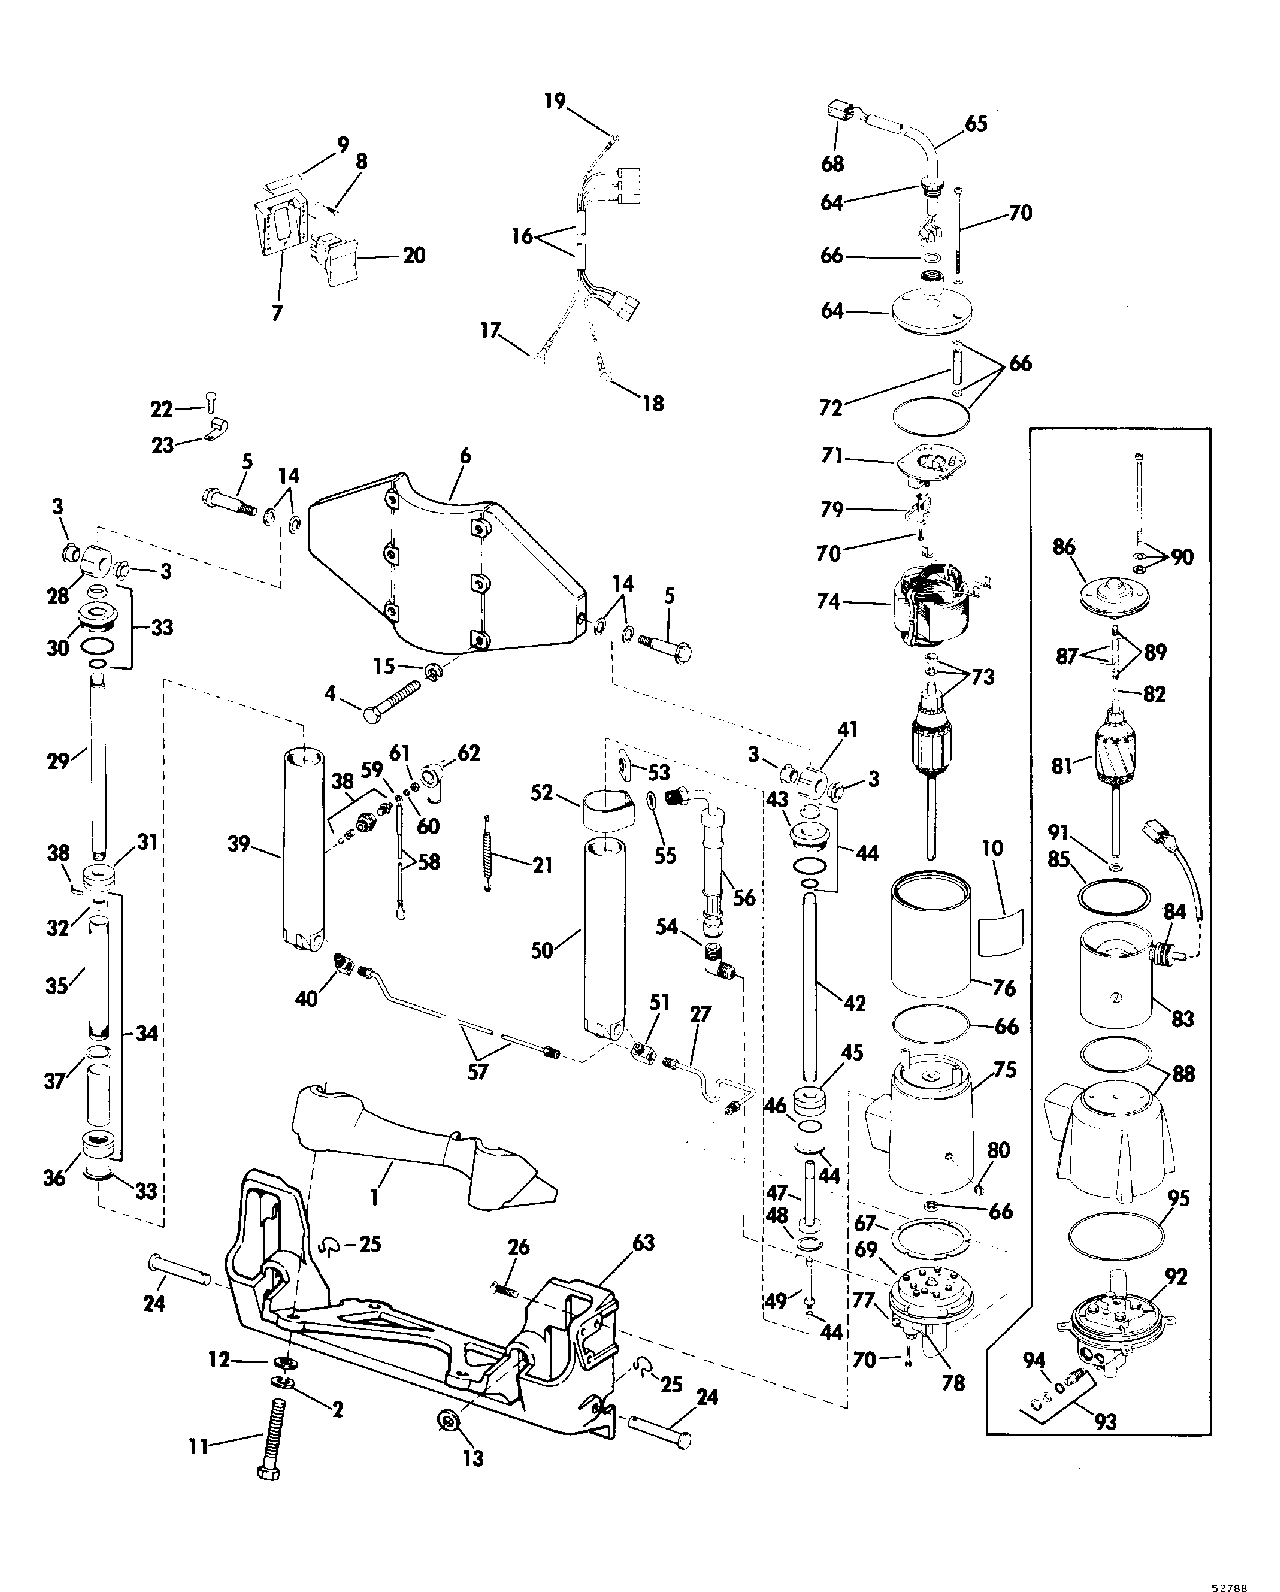 35868?resize\\\\\\\\\\\=665%2C827 1993 evinrude wiring diagram evinrude service manual, evinrude  at gsmx.co